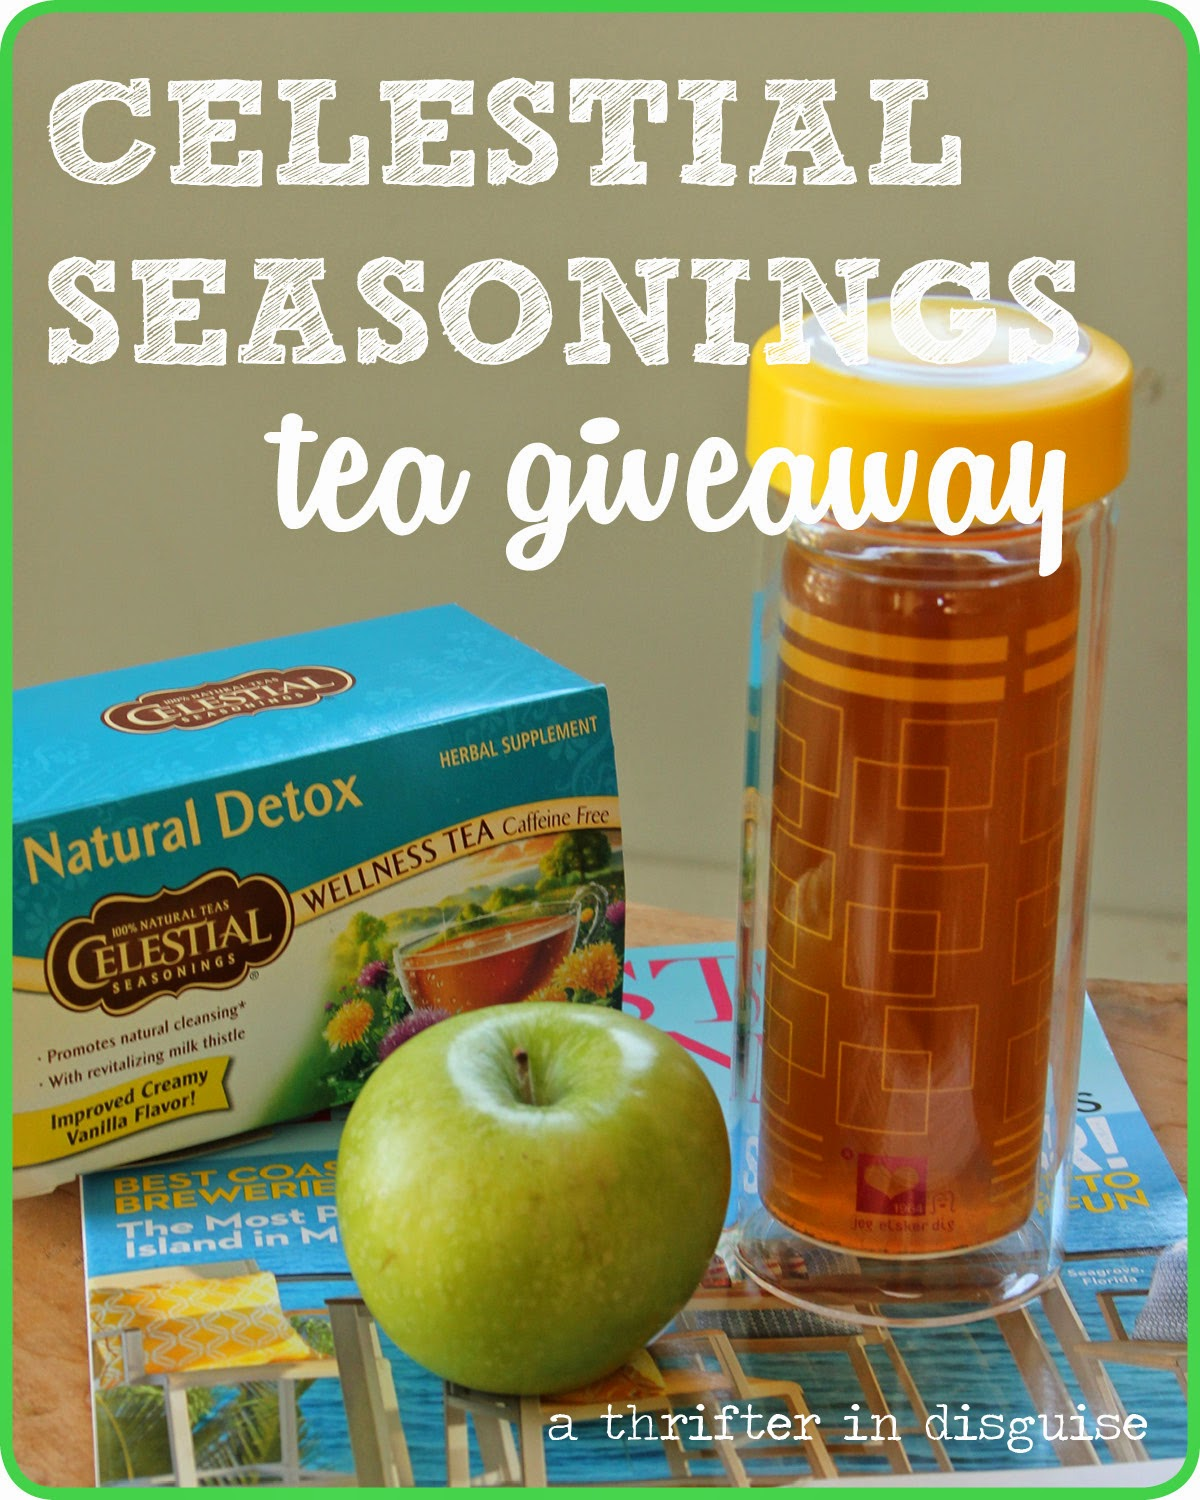 Celestial Seasonings Coupon and Giveaway